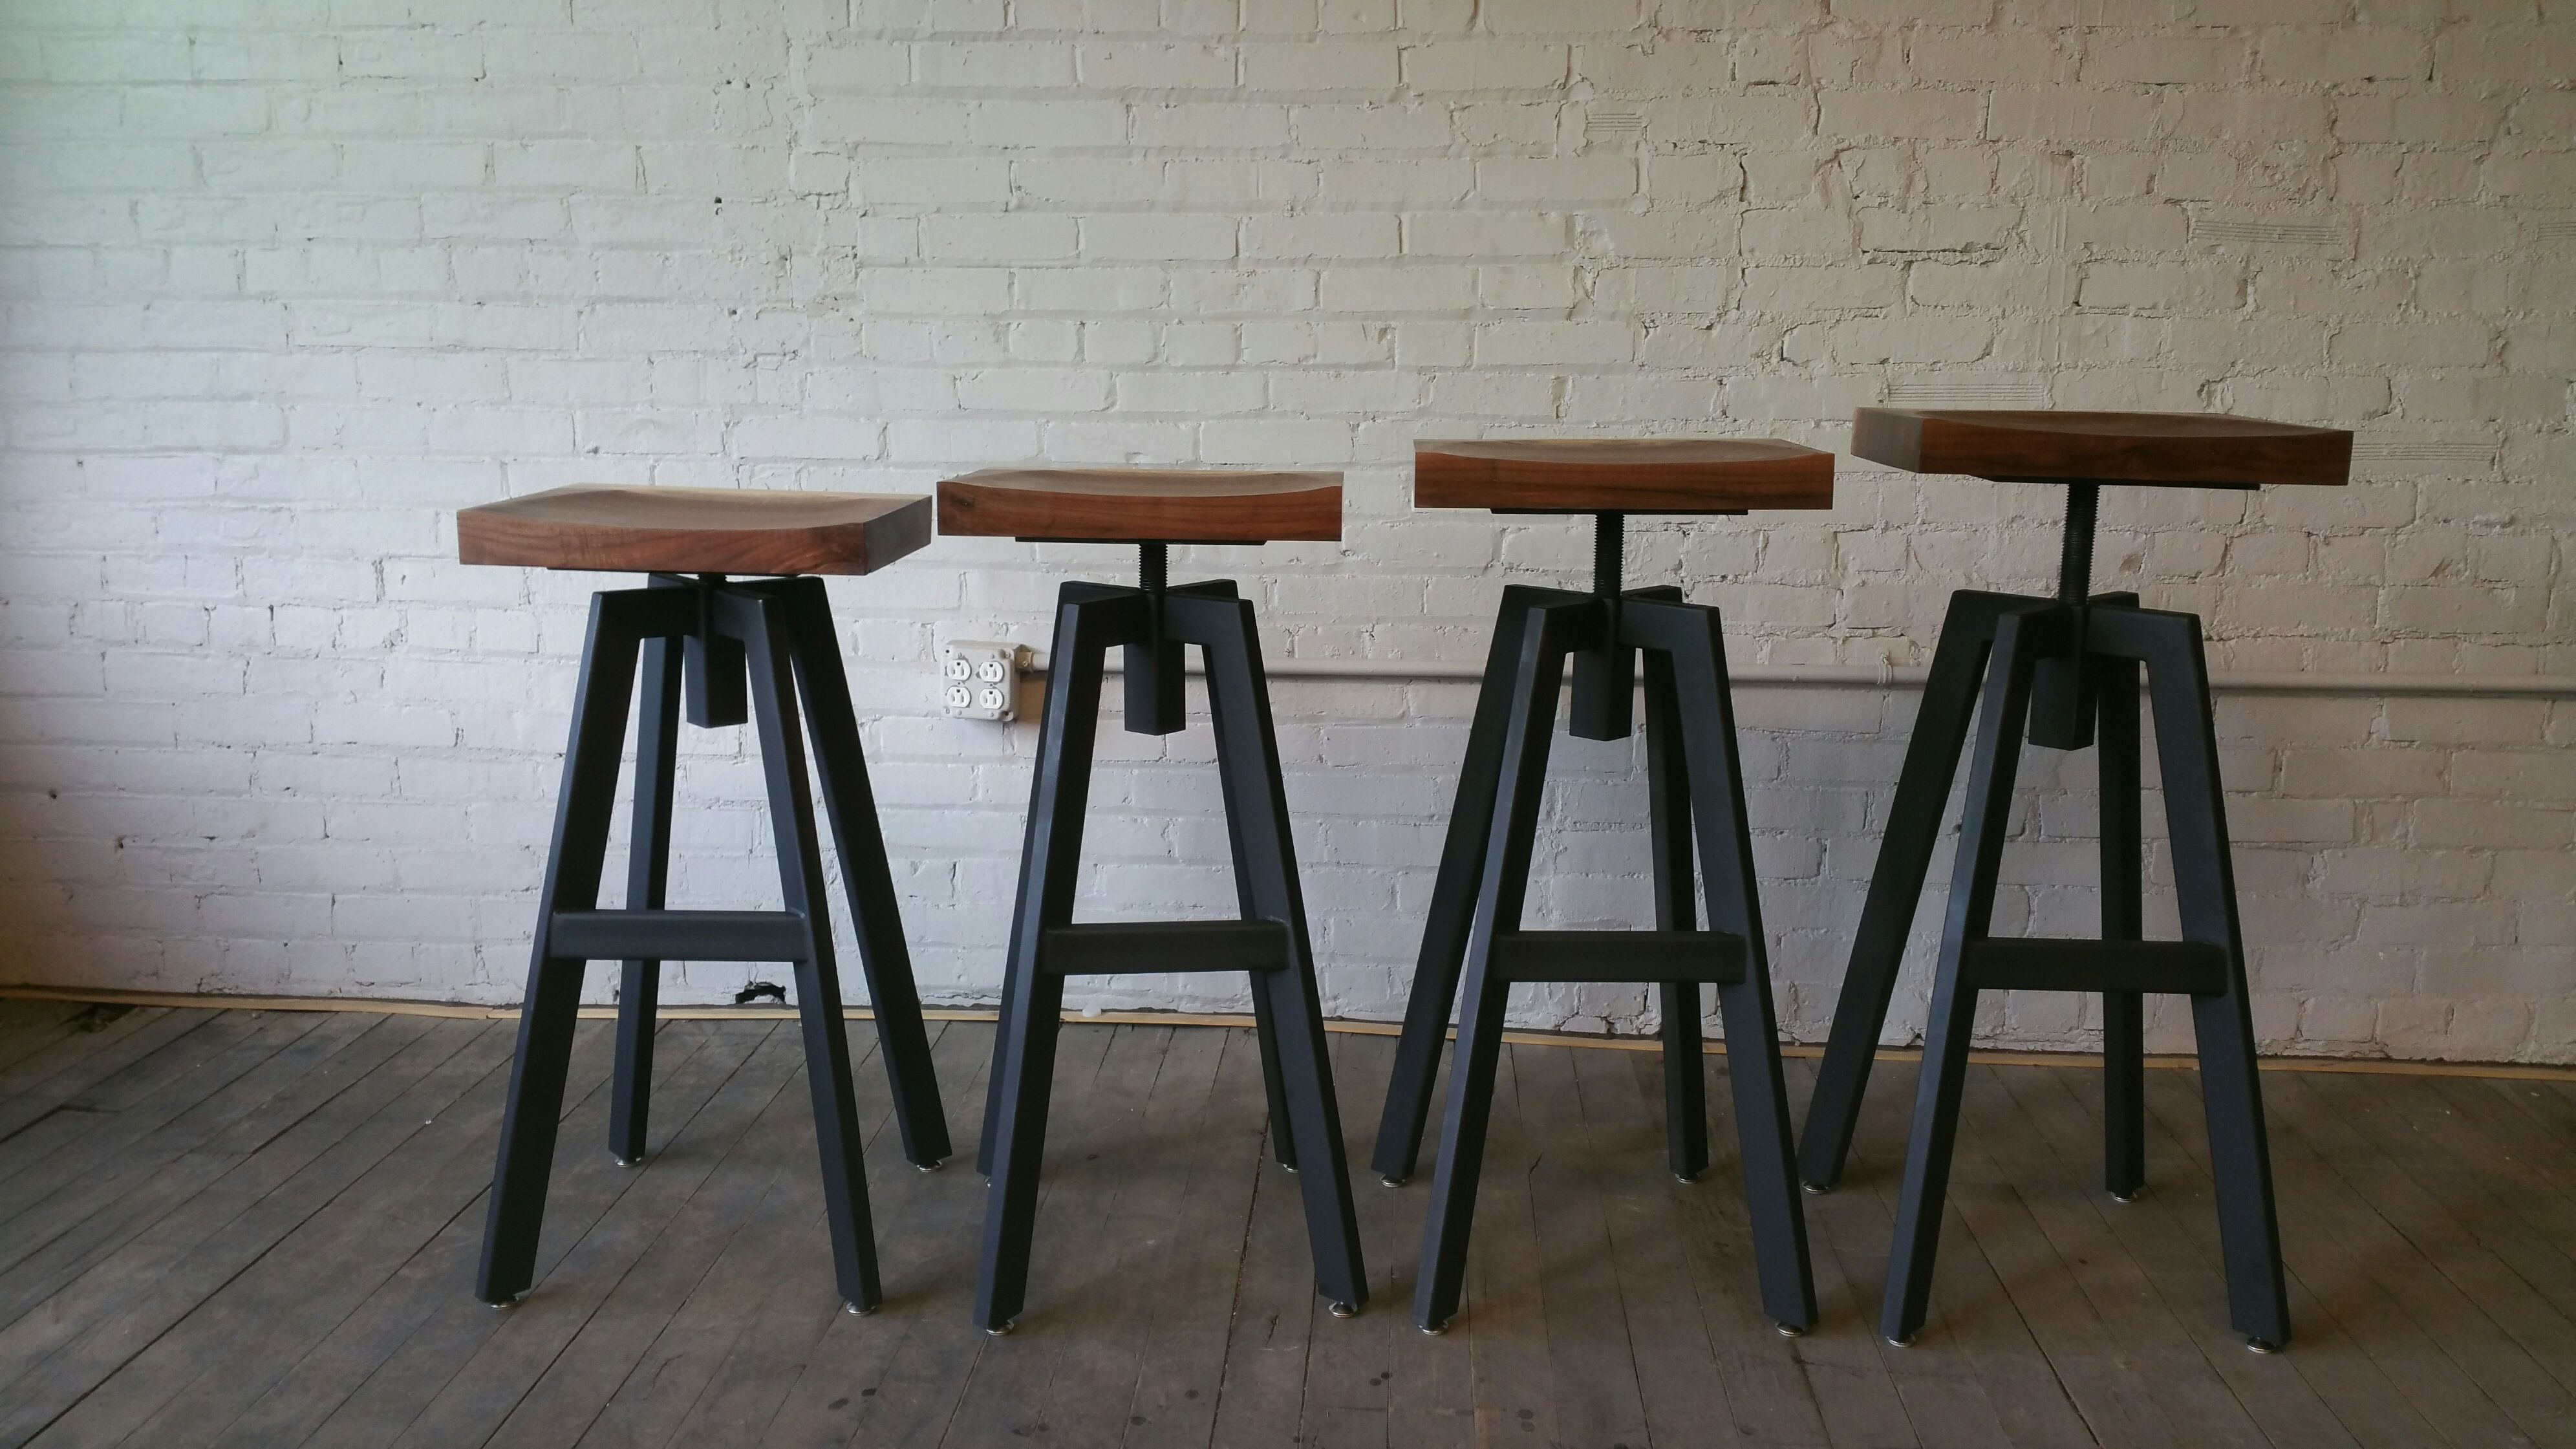 Industrial Design Bar Stools Hand Crafted Industrial Inspired Bar Stool By Donald Mee